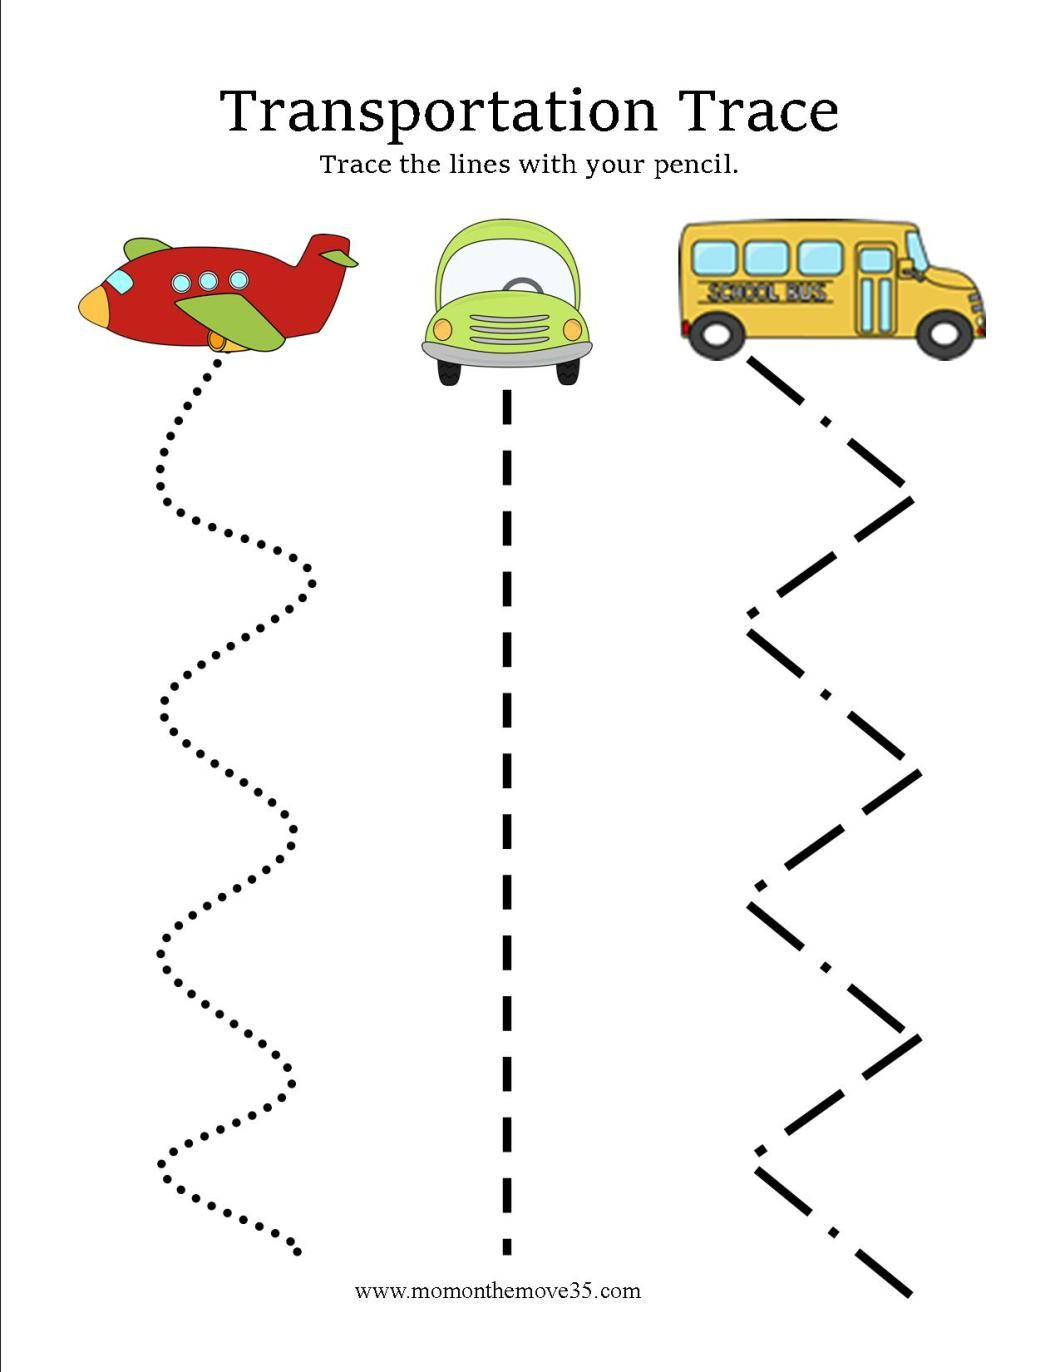 Transportation Activities For Preschoolers With Images